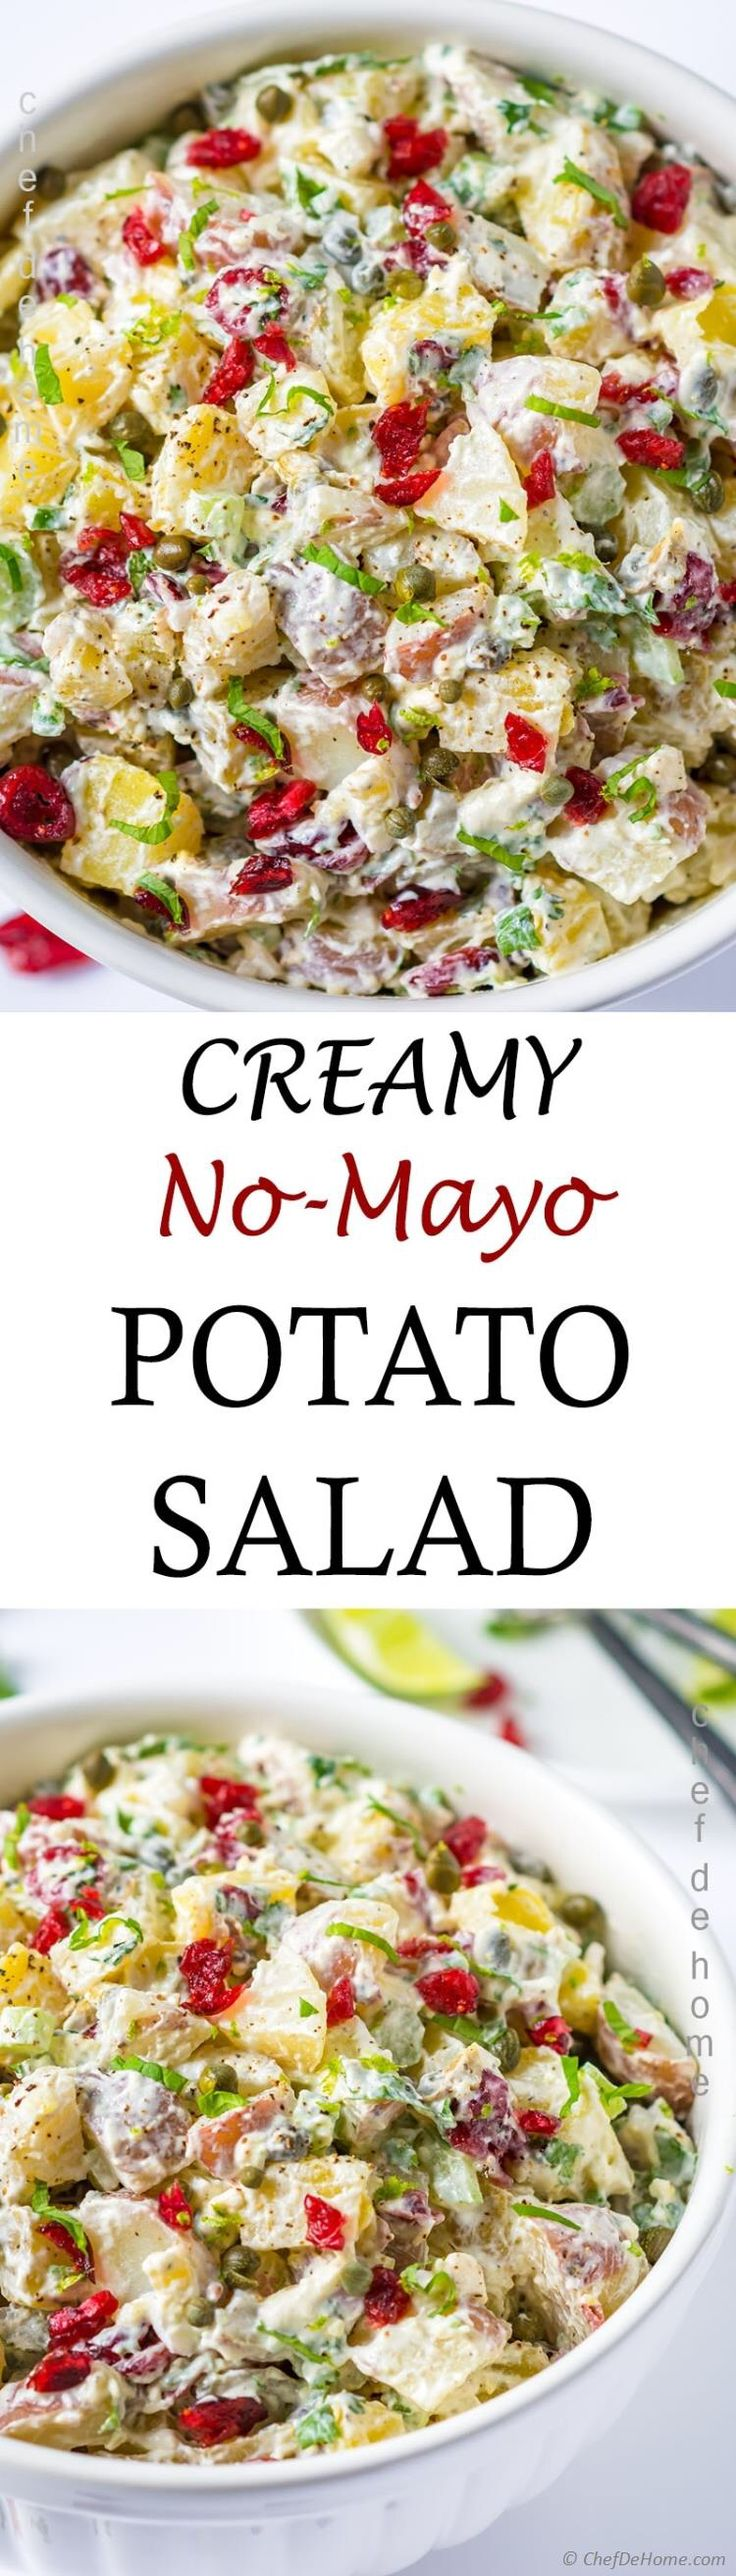 Recipe for Creamy Potato Salad without Mayo. Simple, easy and ridiculously creamy potato salad with combination of red skin potatoes and golden potatoes, crunchy celery, sweet cranberries and creamy sour cream dressing without mayo.This is a kinda potato salad which everyone can enjoy! All who love potato salads and all who can't eat it when it has mayo! I replaced mayo with two creams.,